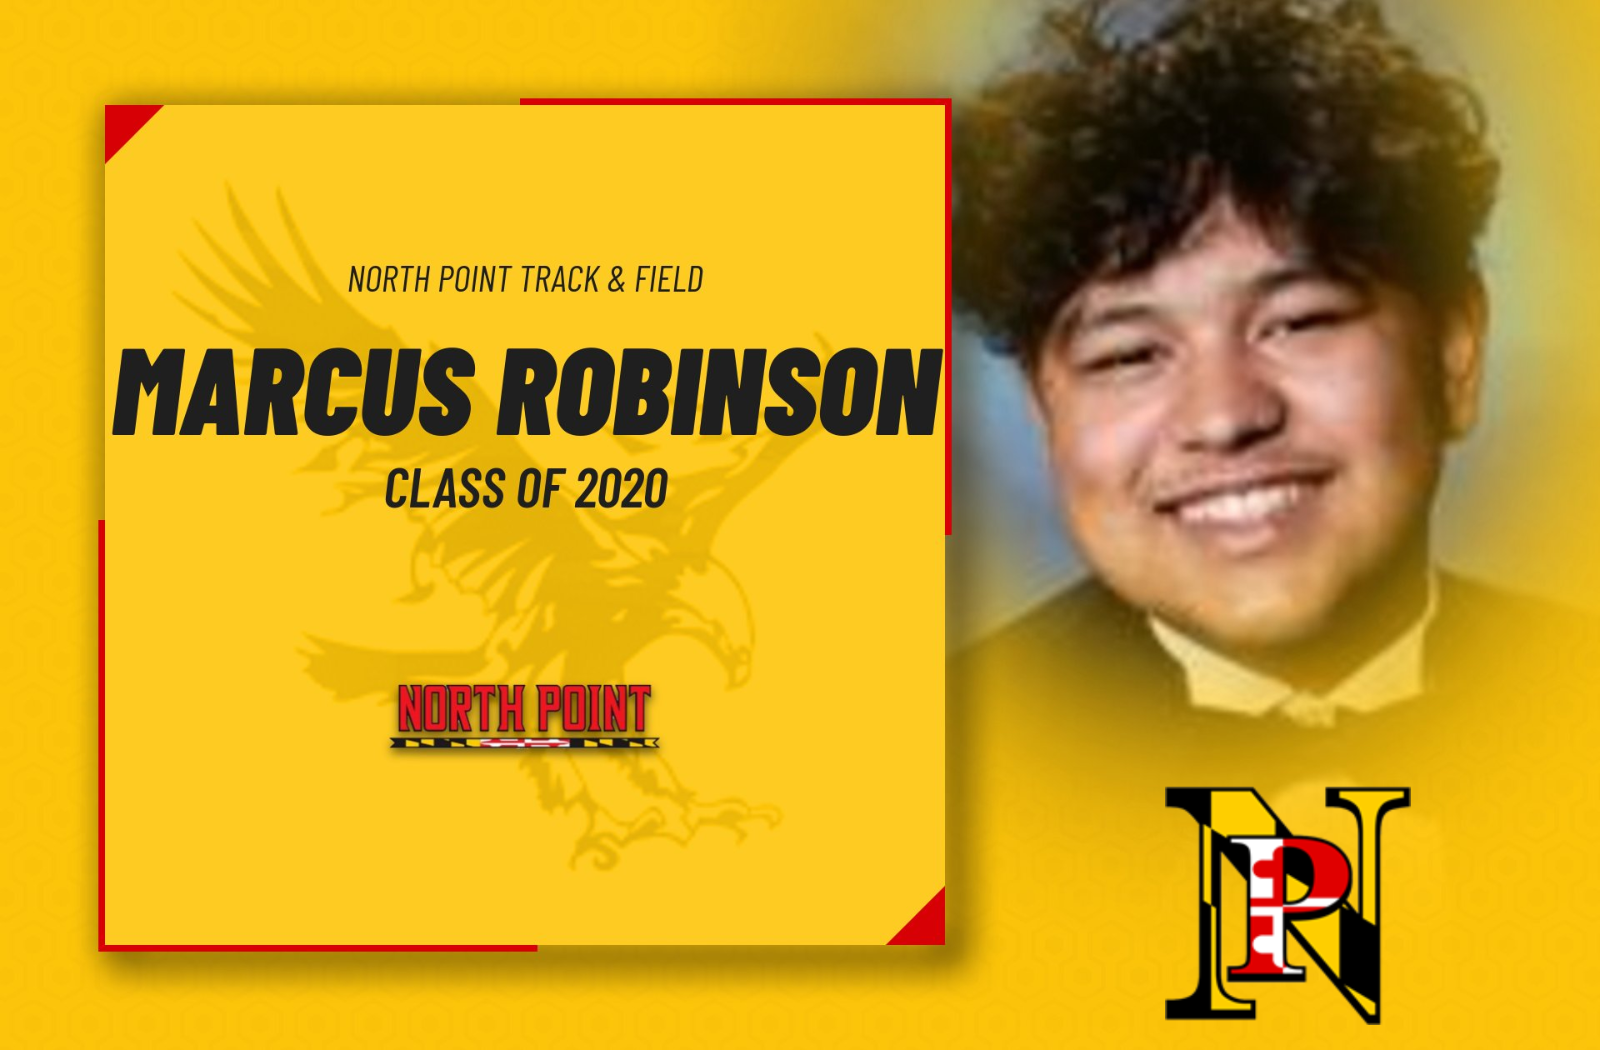 Class of 2020- Marcus Robinson, Track & Field